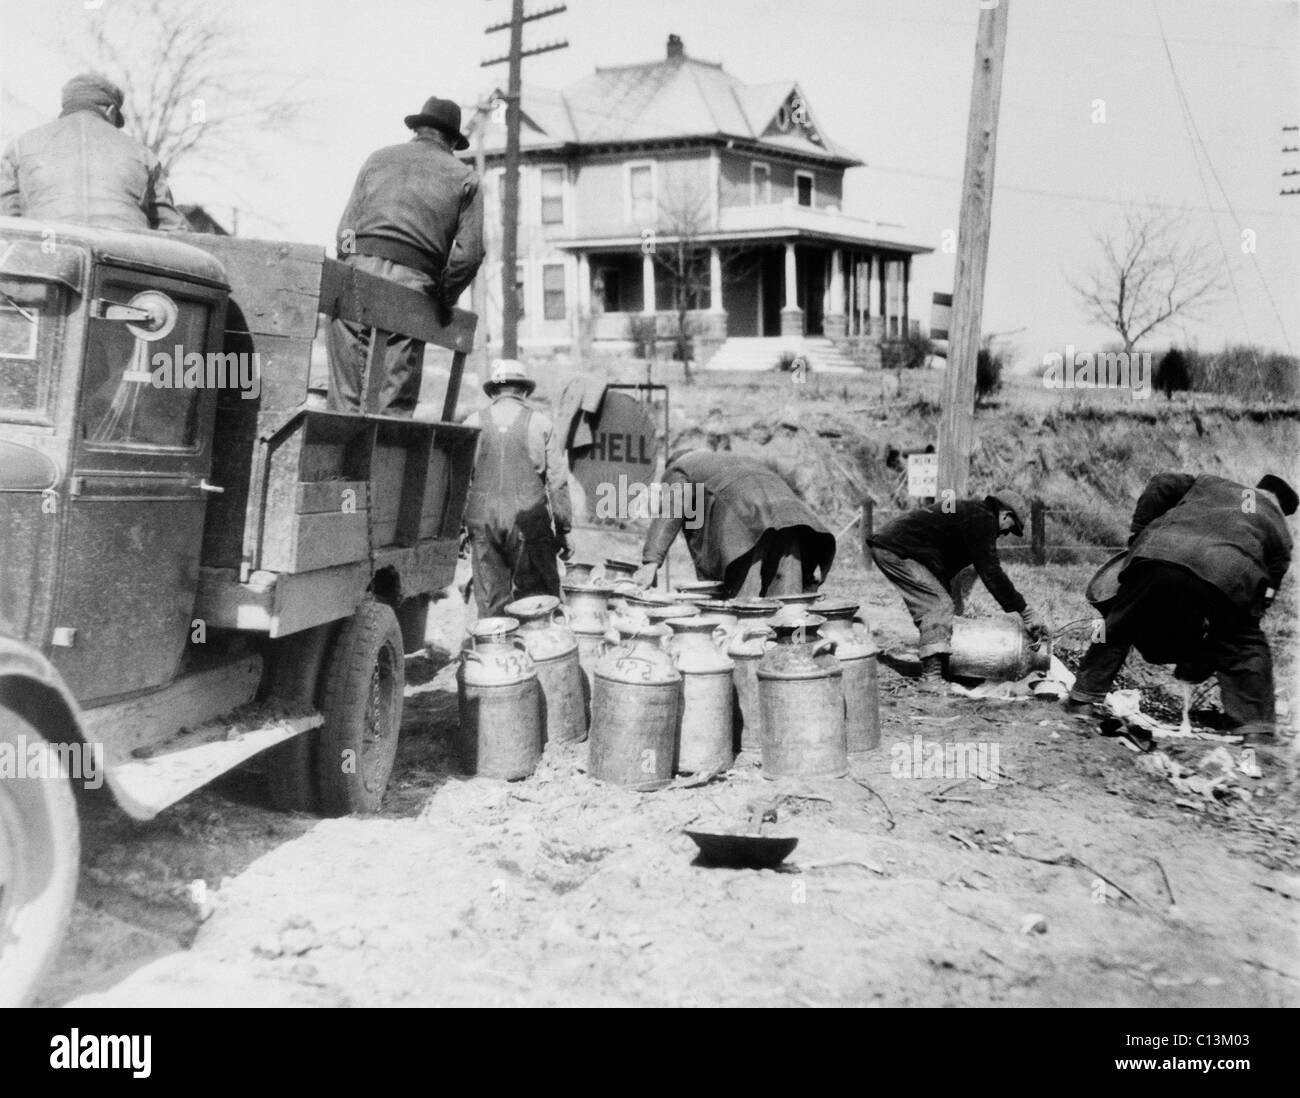 Striking farmers dump milk cans from a truck they have stopped to prevent delivery to market during the Great Depression. - Stock Image